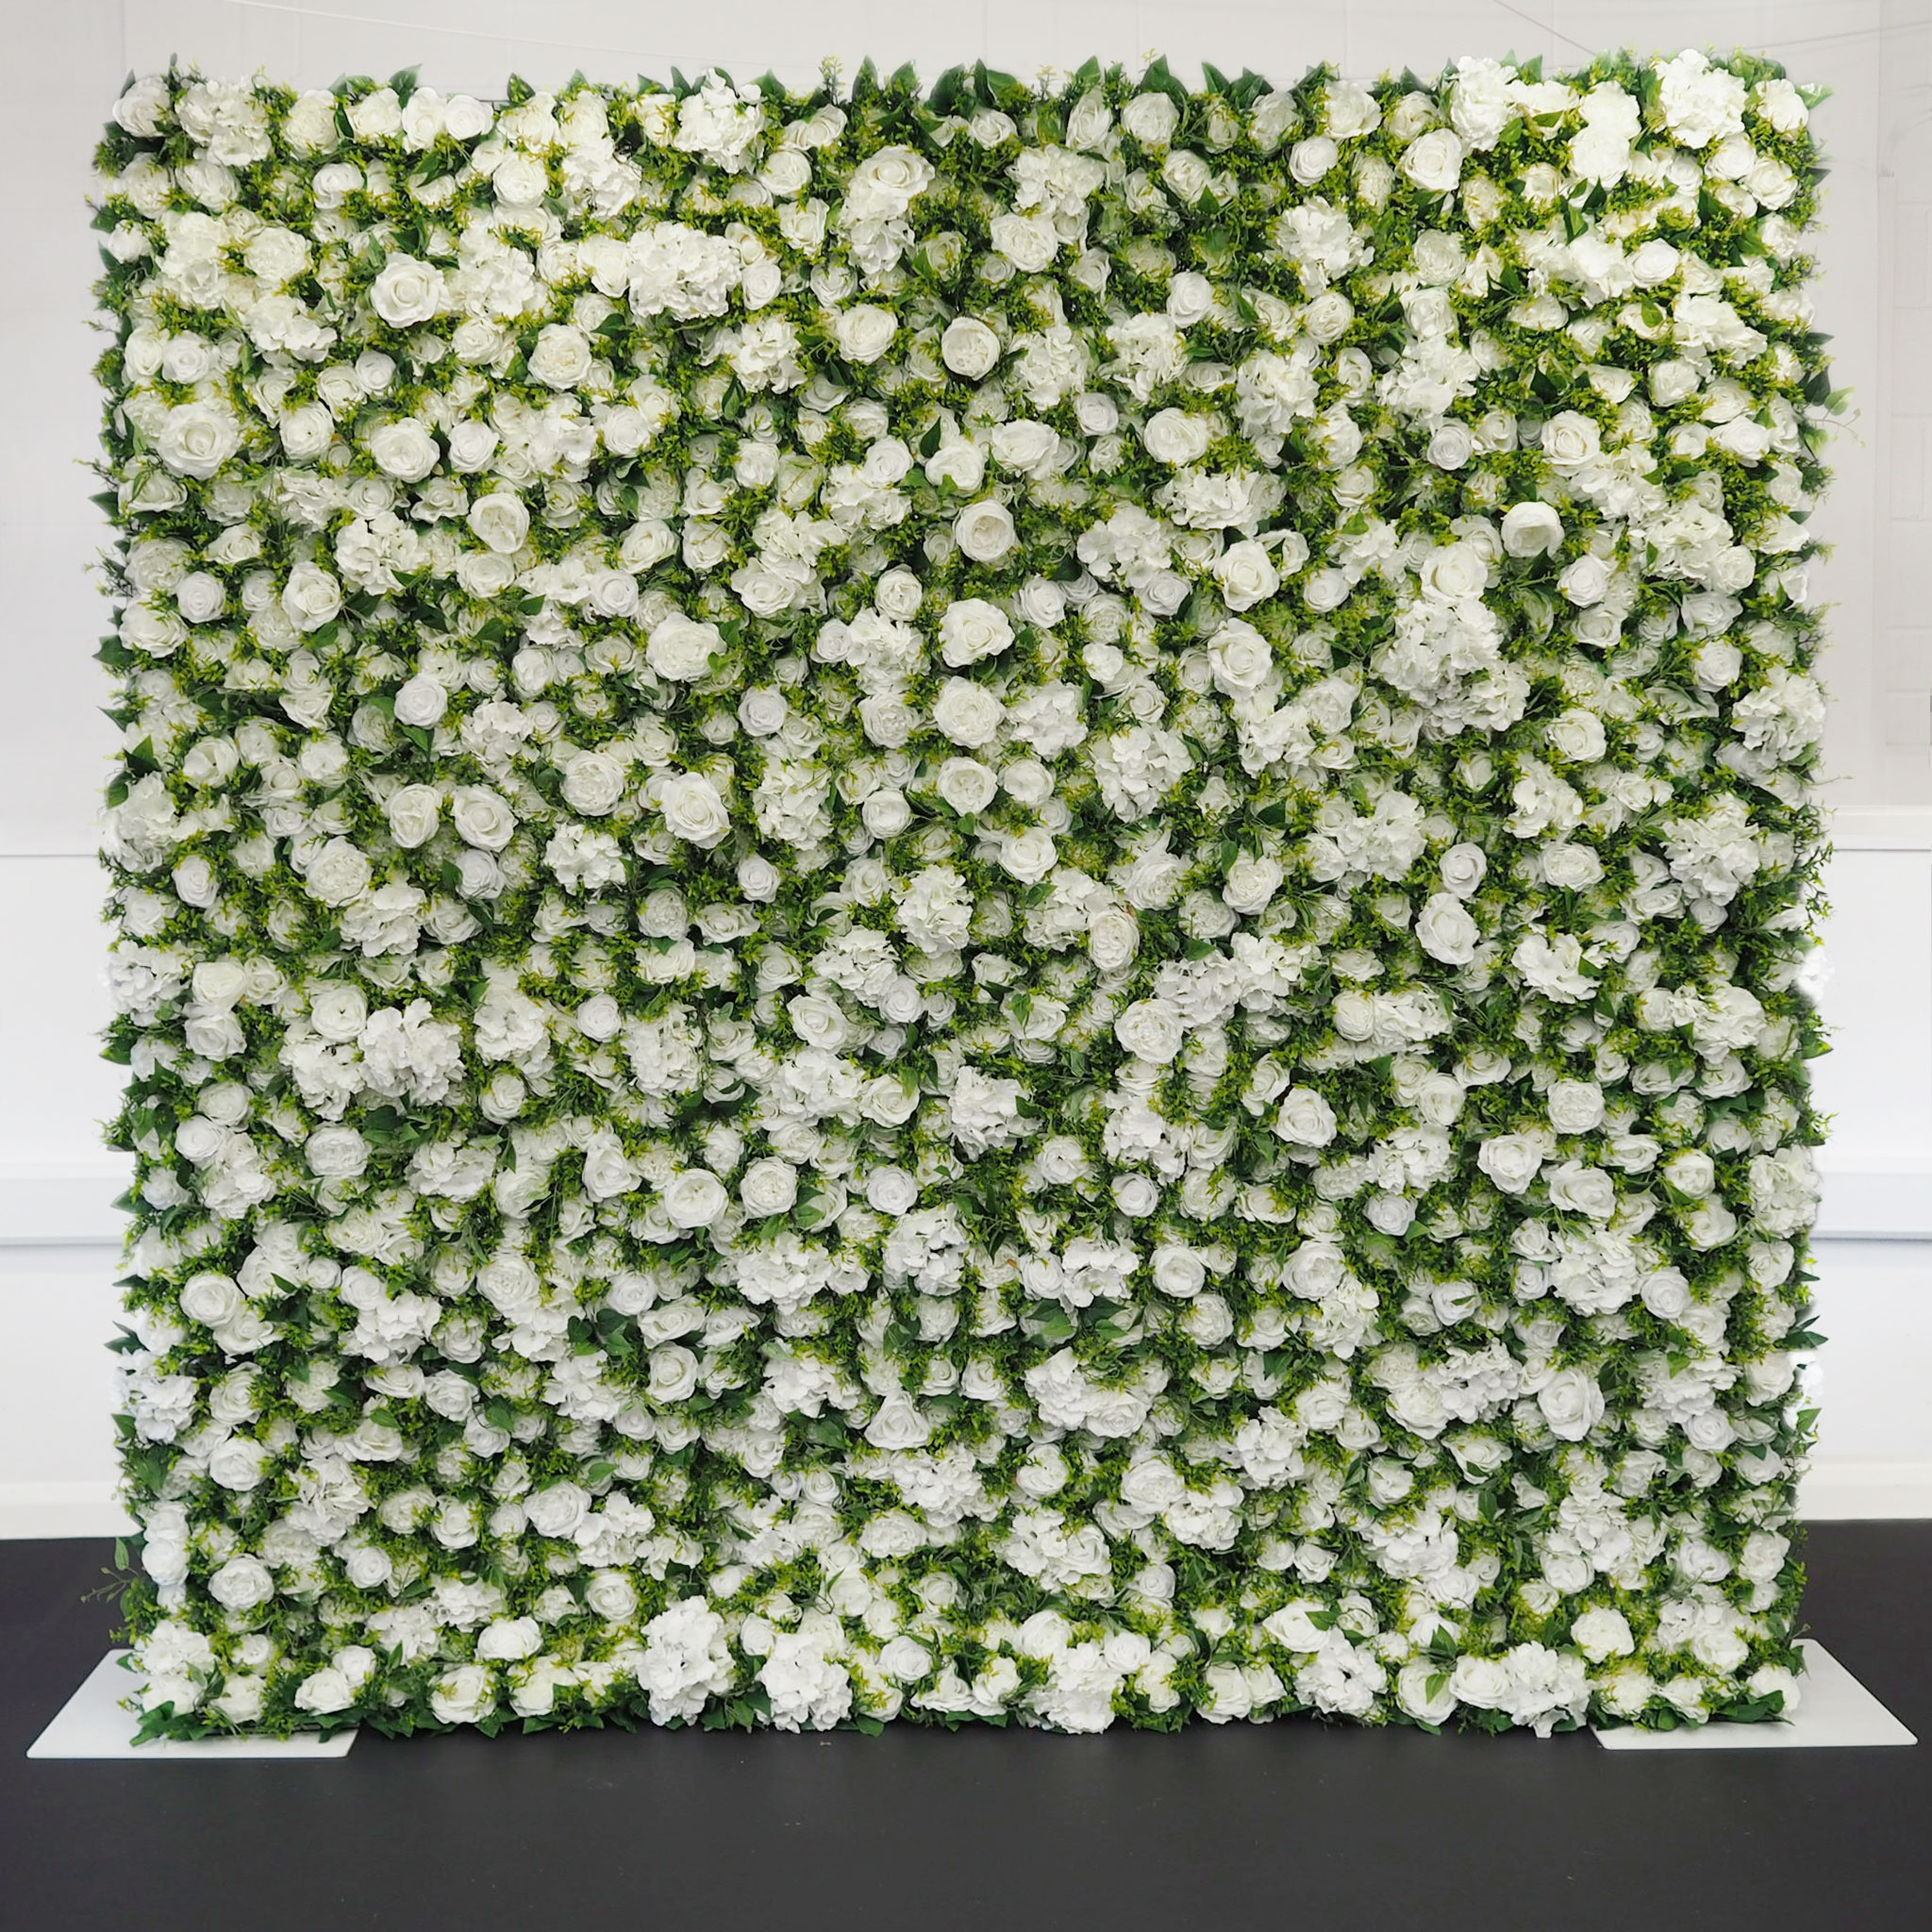 The Ivory And Green Wall Devon Luxury Flower Wall Hire Petal And Knot